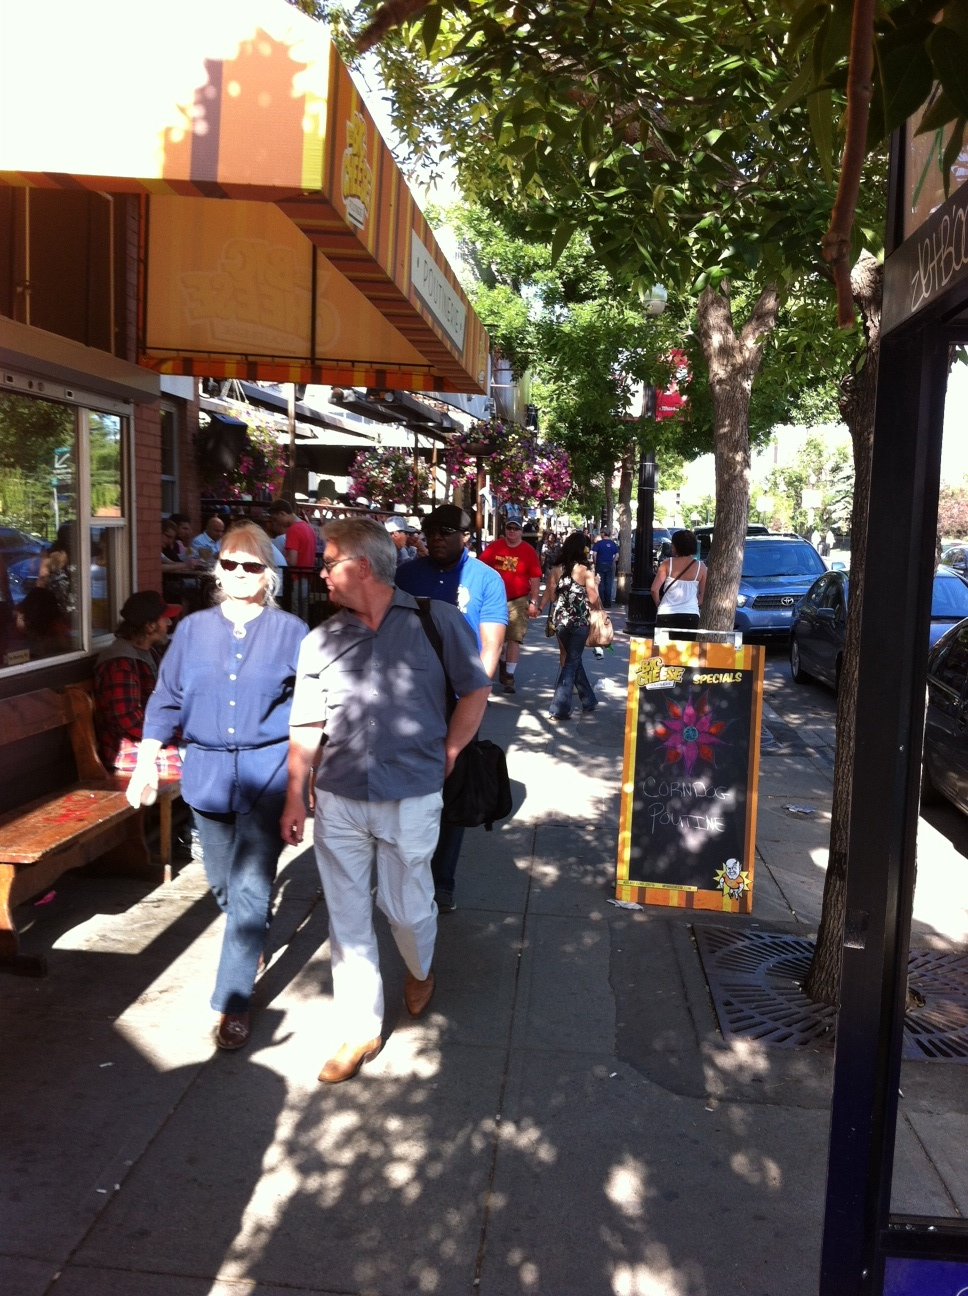 Calgary's 17th Avenue is a popular retail and restaurant row just seven blocks from the central business district.